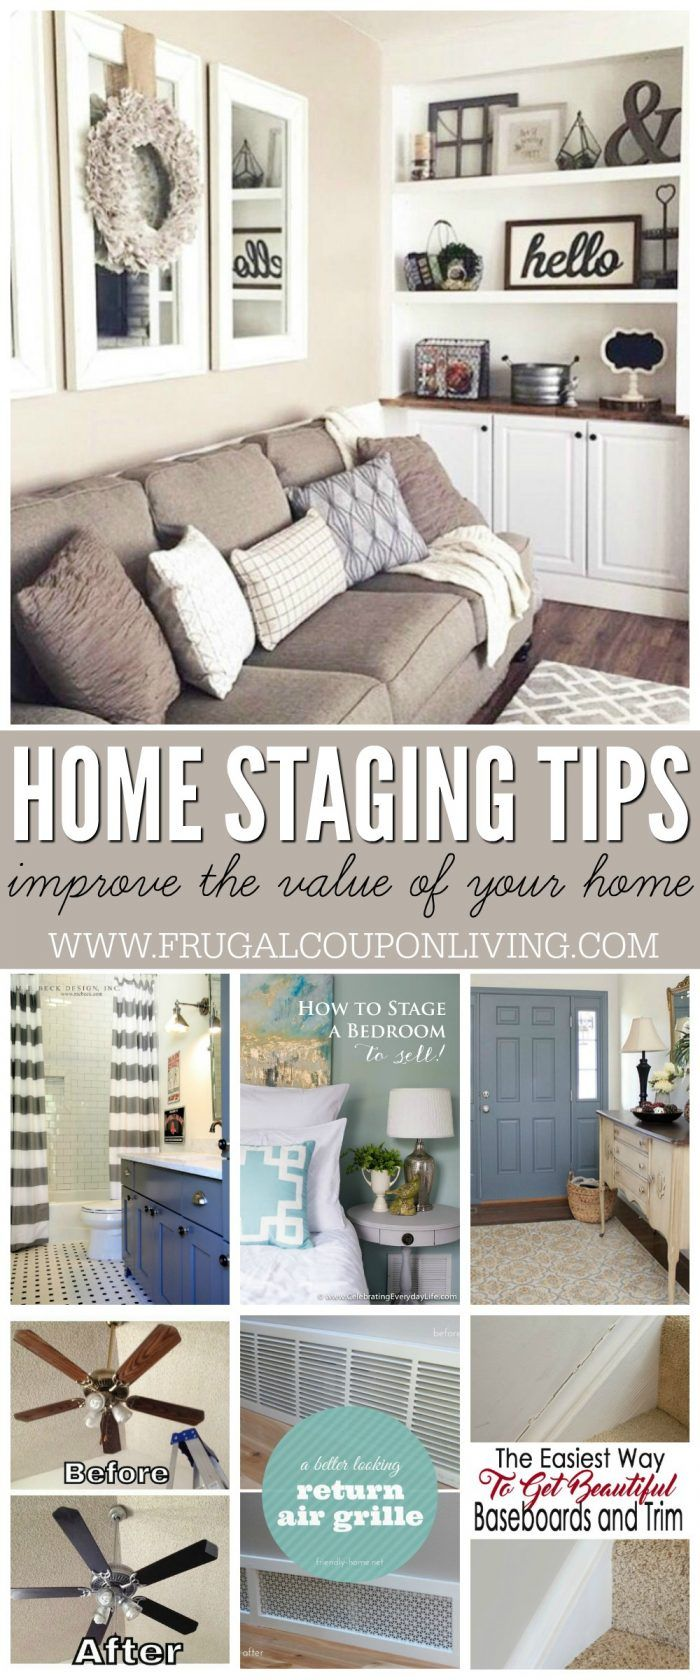 Tips for How to Stage a Bedroom to sell! | Stage, Decorating and ...